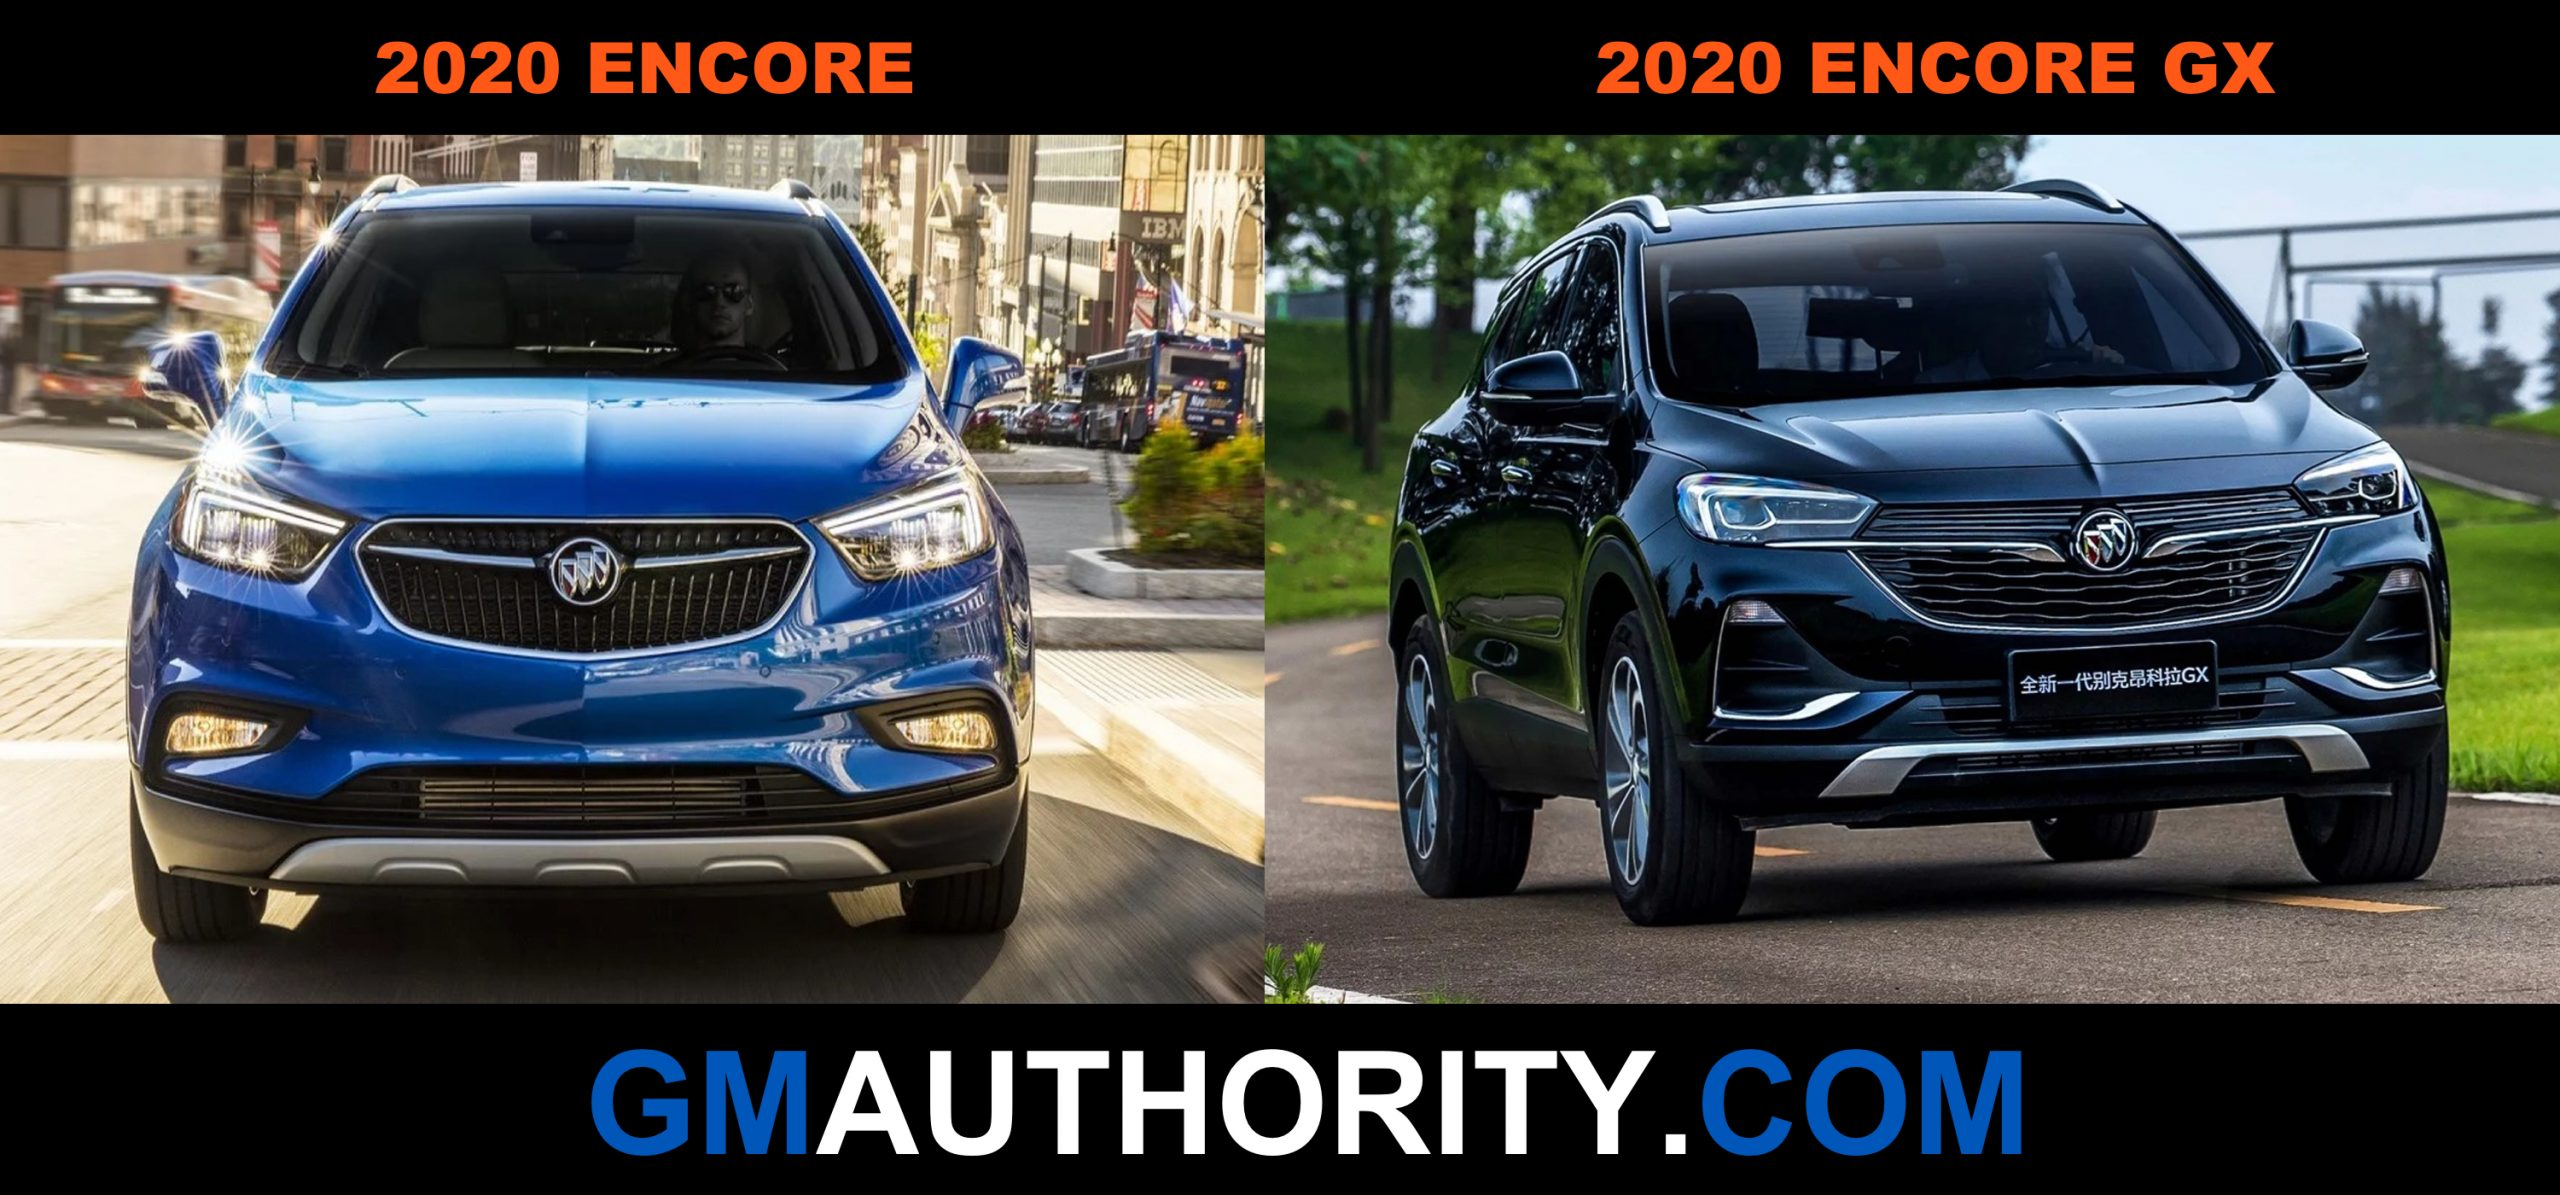 Buick Encore Vs. Buick Encore Gx: Visual Comparison | Gm 2022 Buick Encore Gx Test Drive, Engine, Reviews